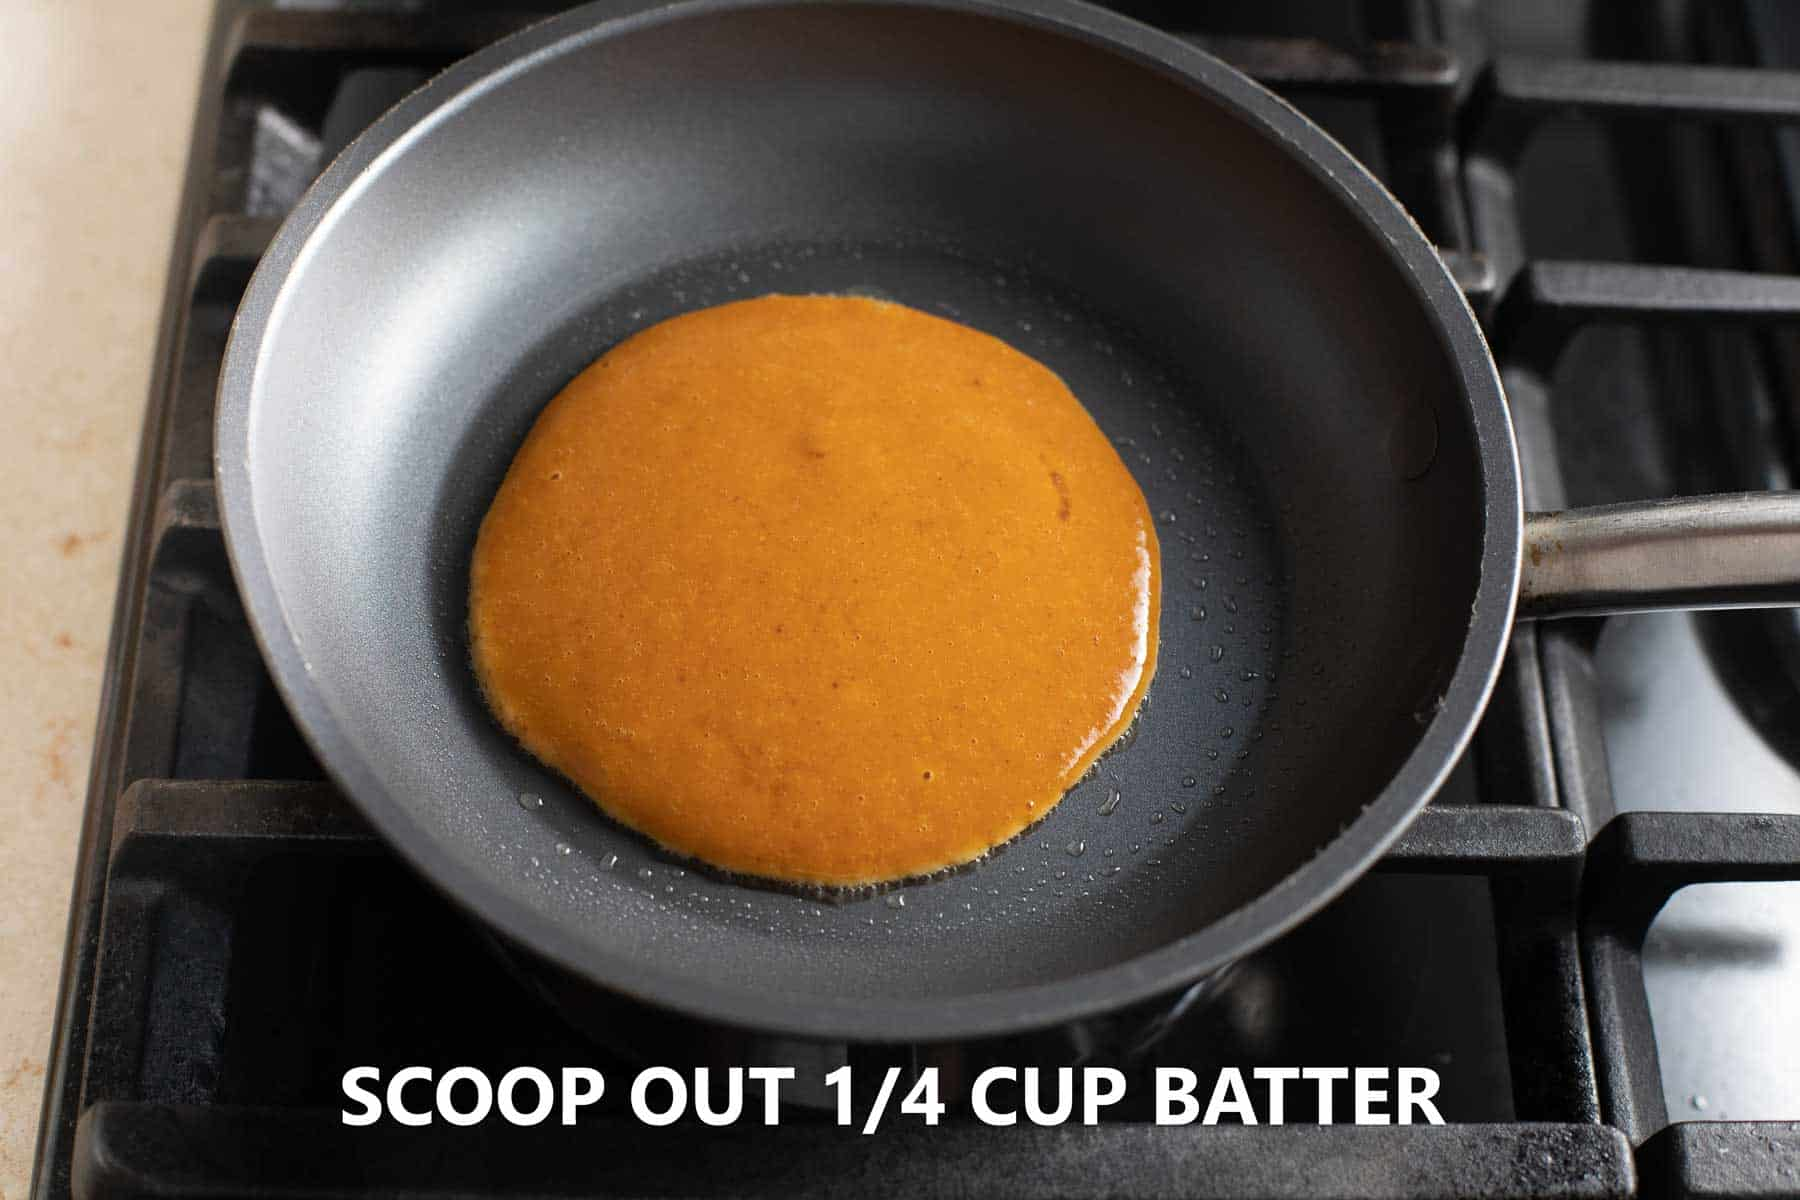 pancake batter poured into nonstick pan